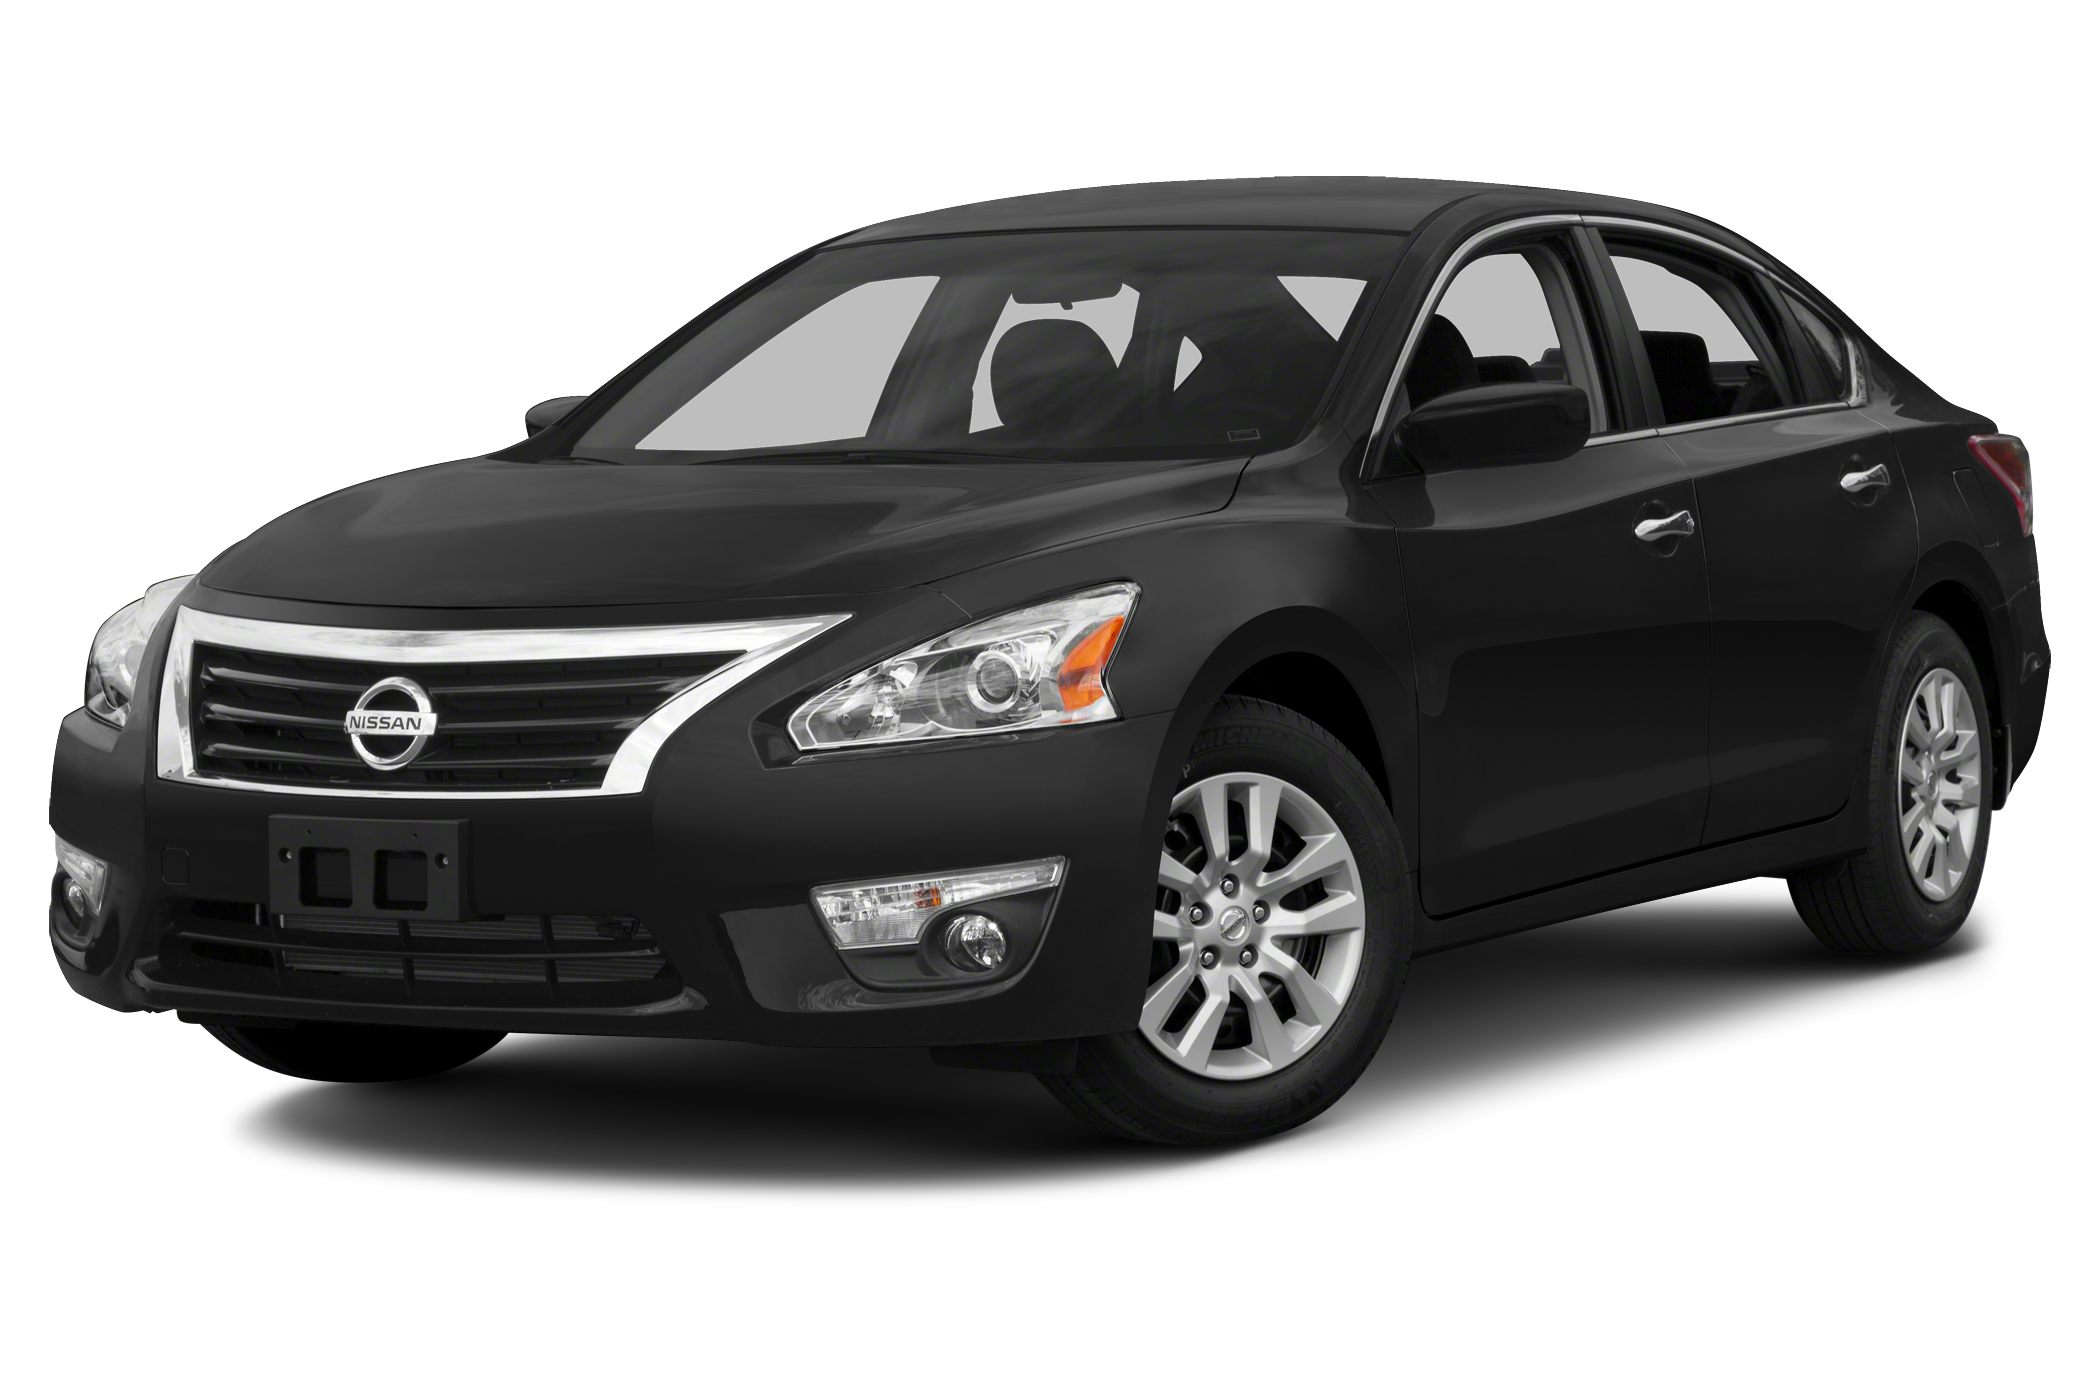 2015 Nissan Altima 2.5 S Sedan for sale in Alexandria for $18,200 with 0 miles